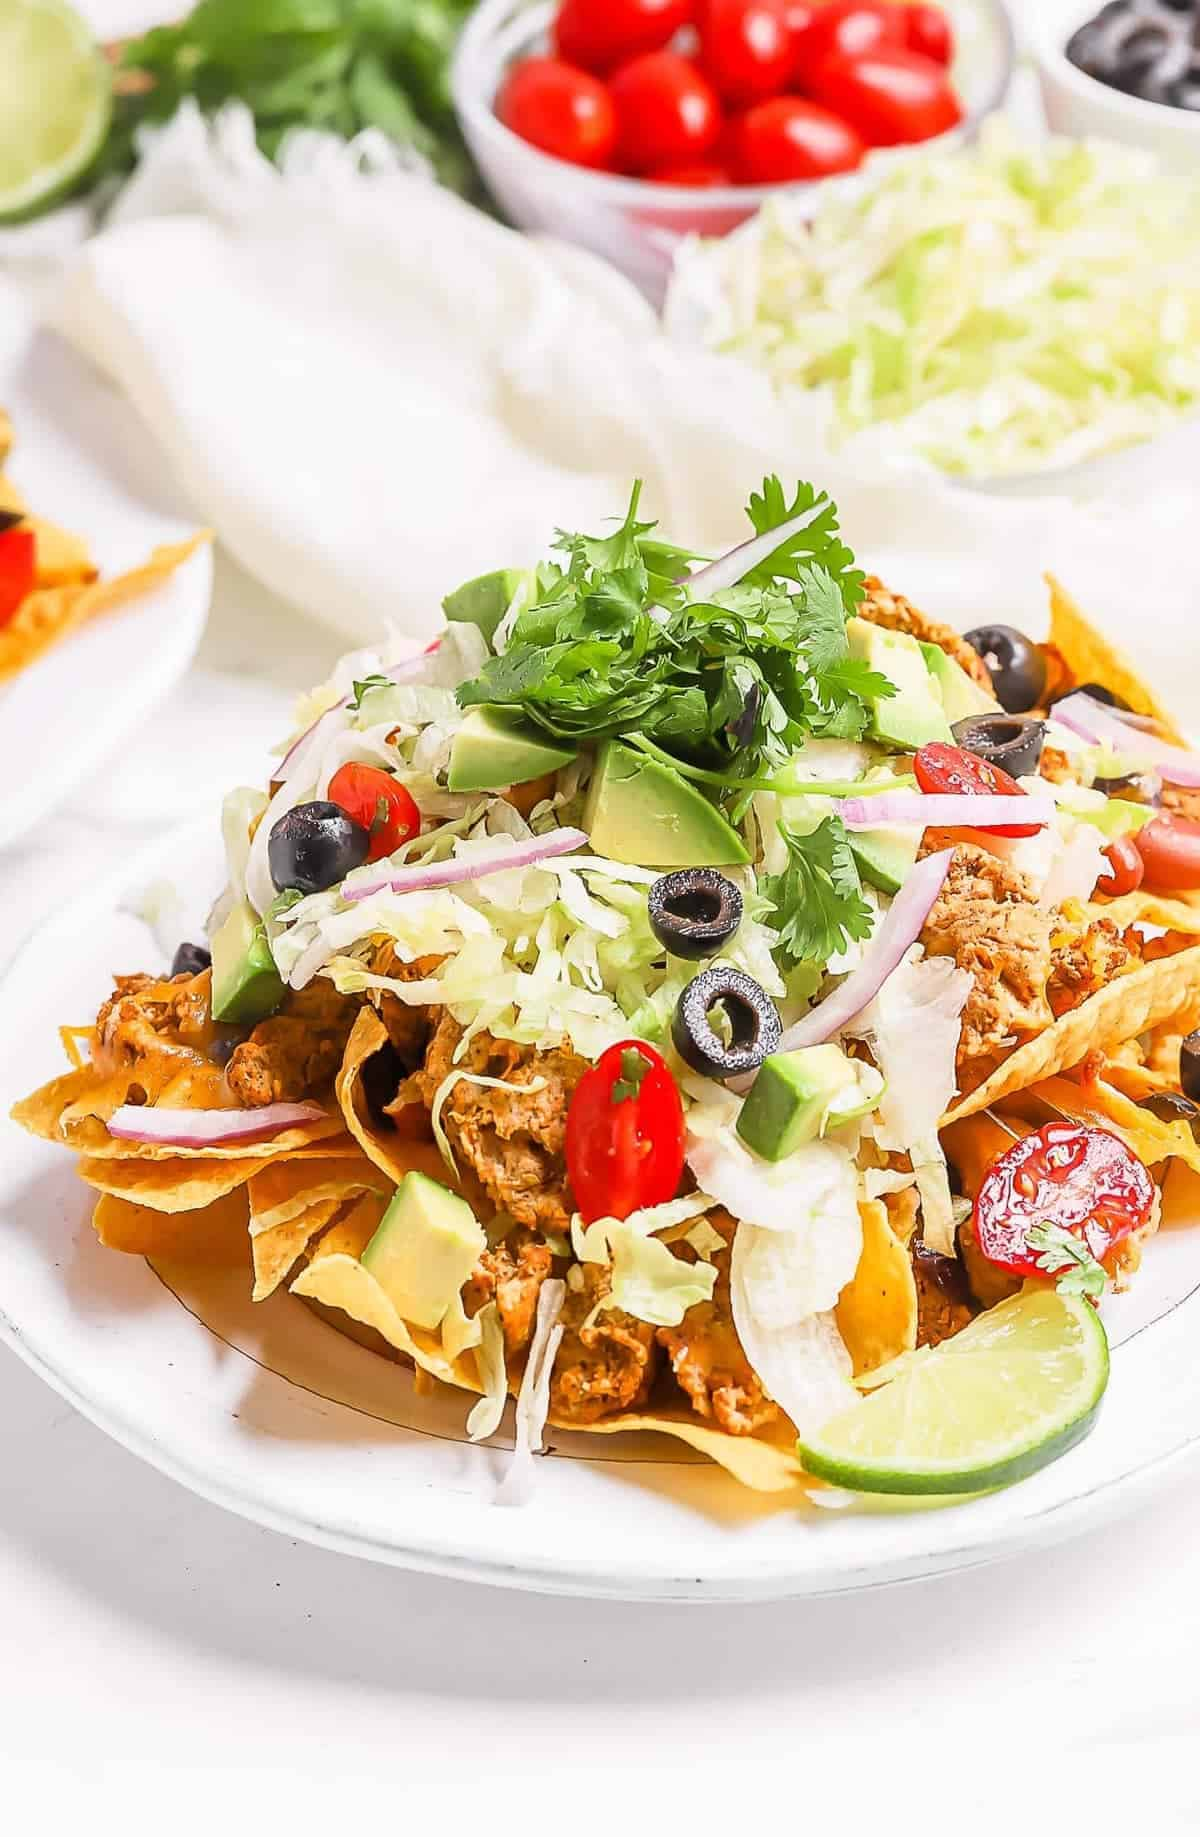 chicken nachos topped with fresh salad